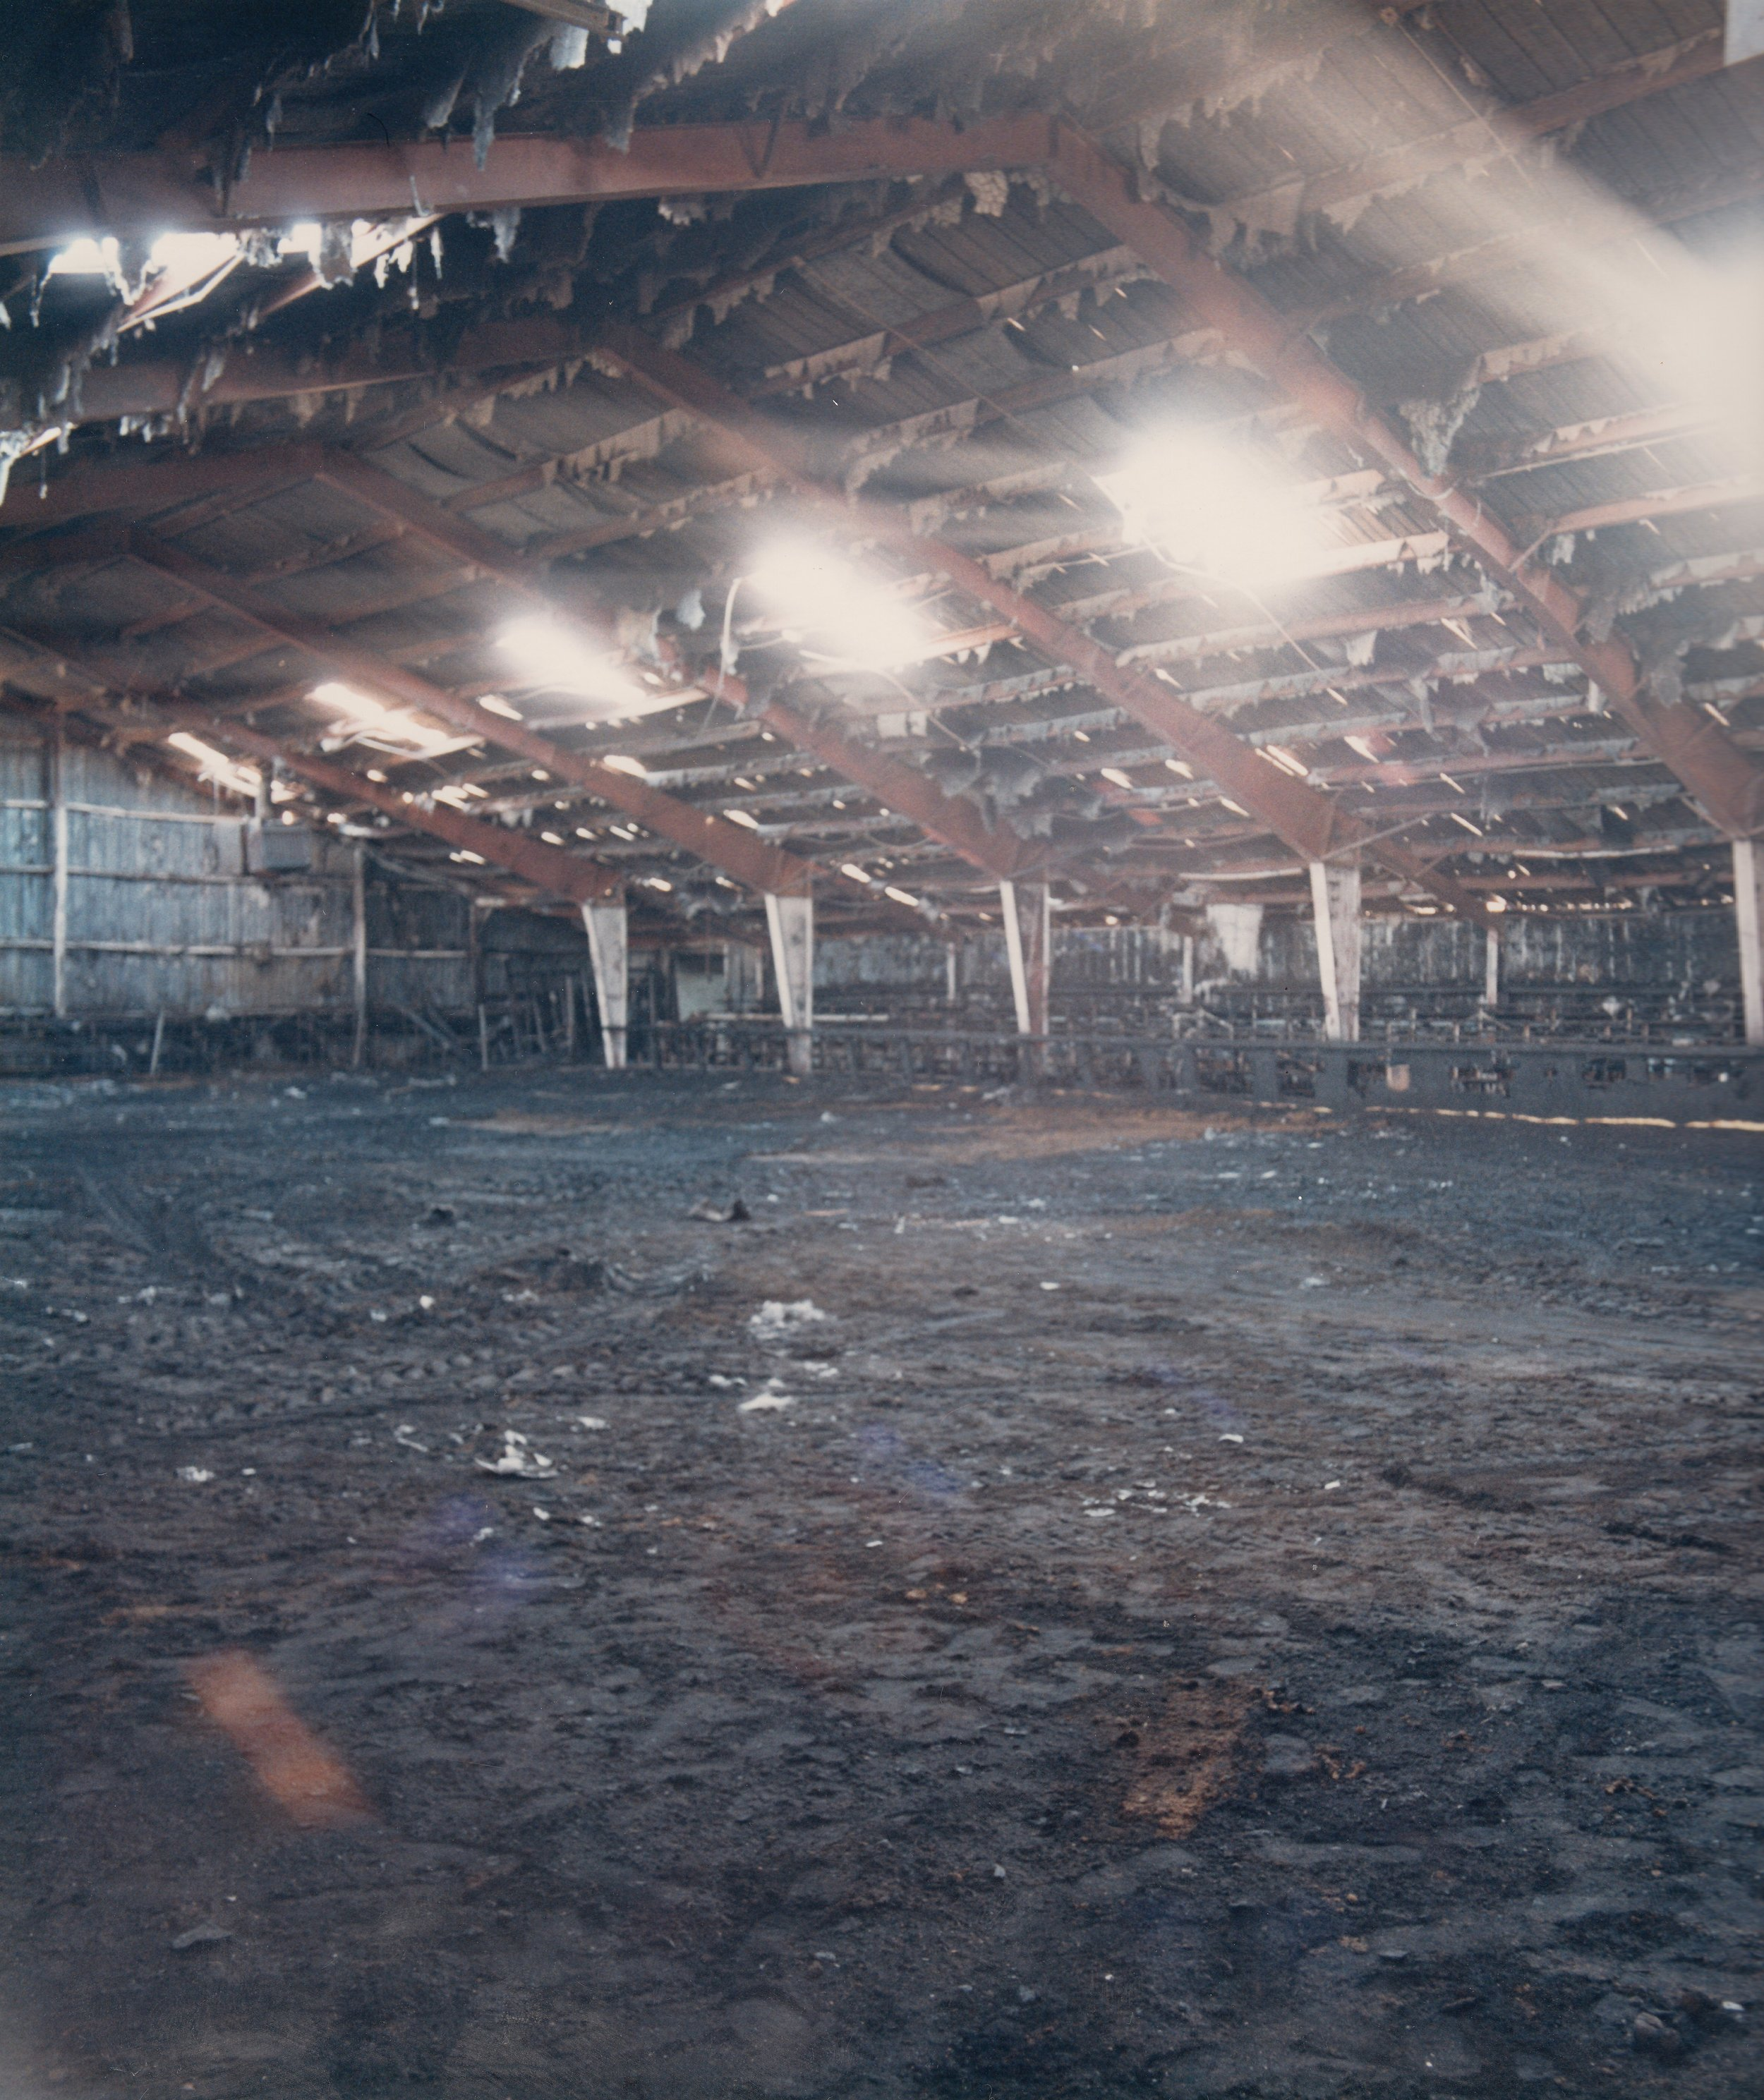 The Westernaires Red Arena's interior, post-fire, March 1986.  This arena was absolutely essential to Westernaires' ability to practice during the winter months.   Three beloved Westernaires rental horses perished in the fire.